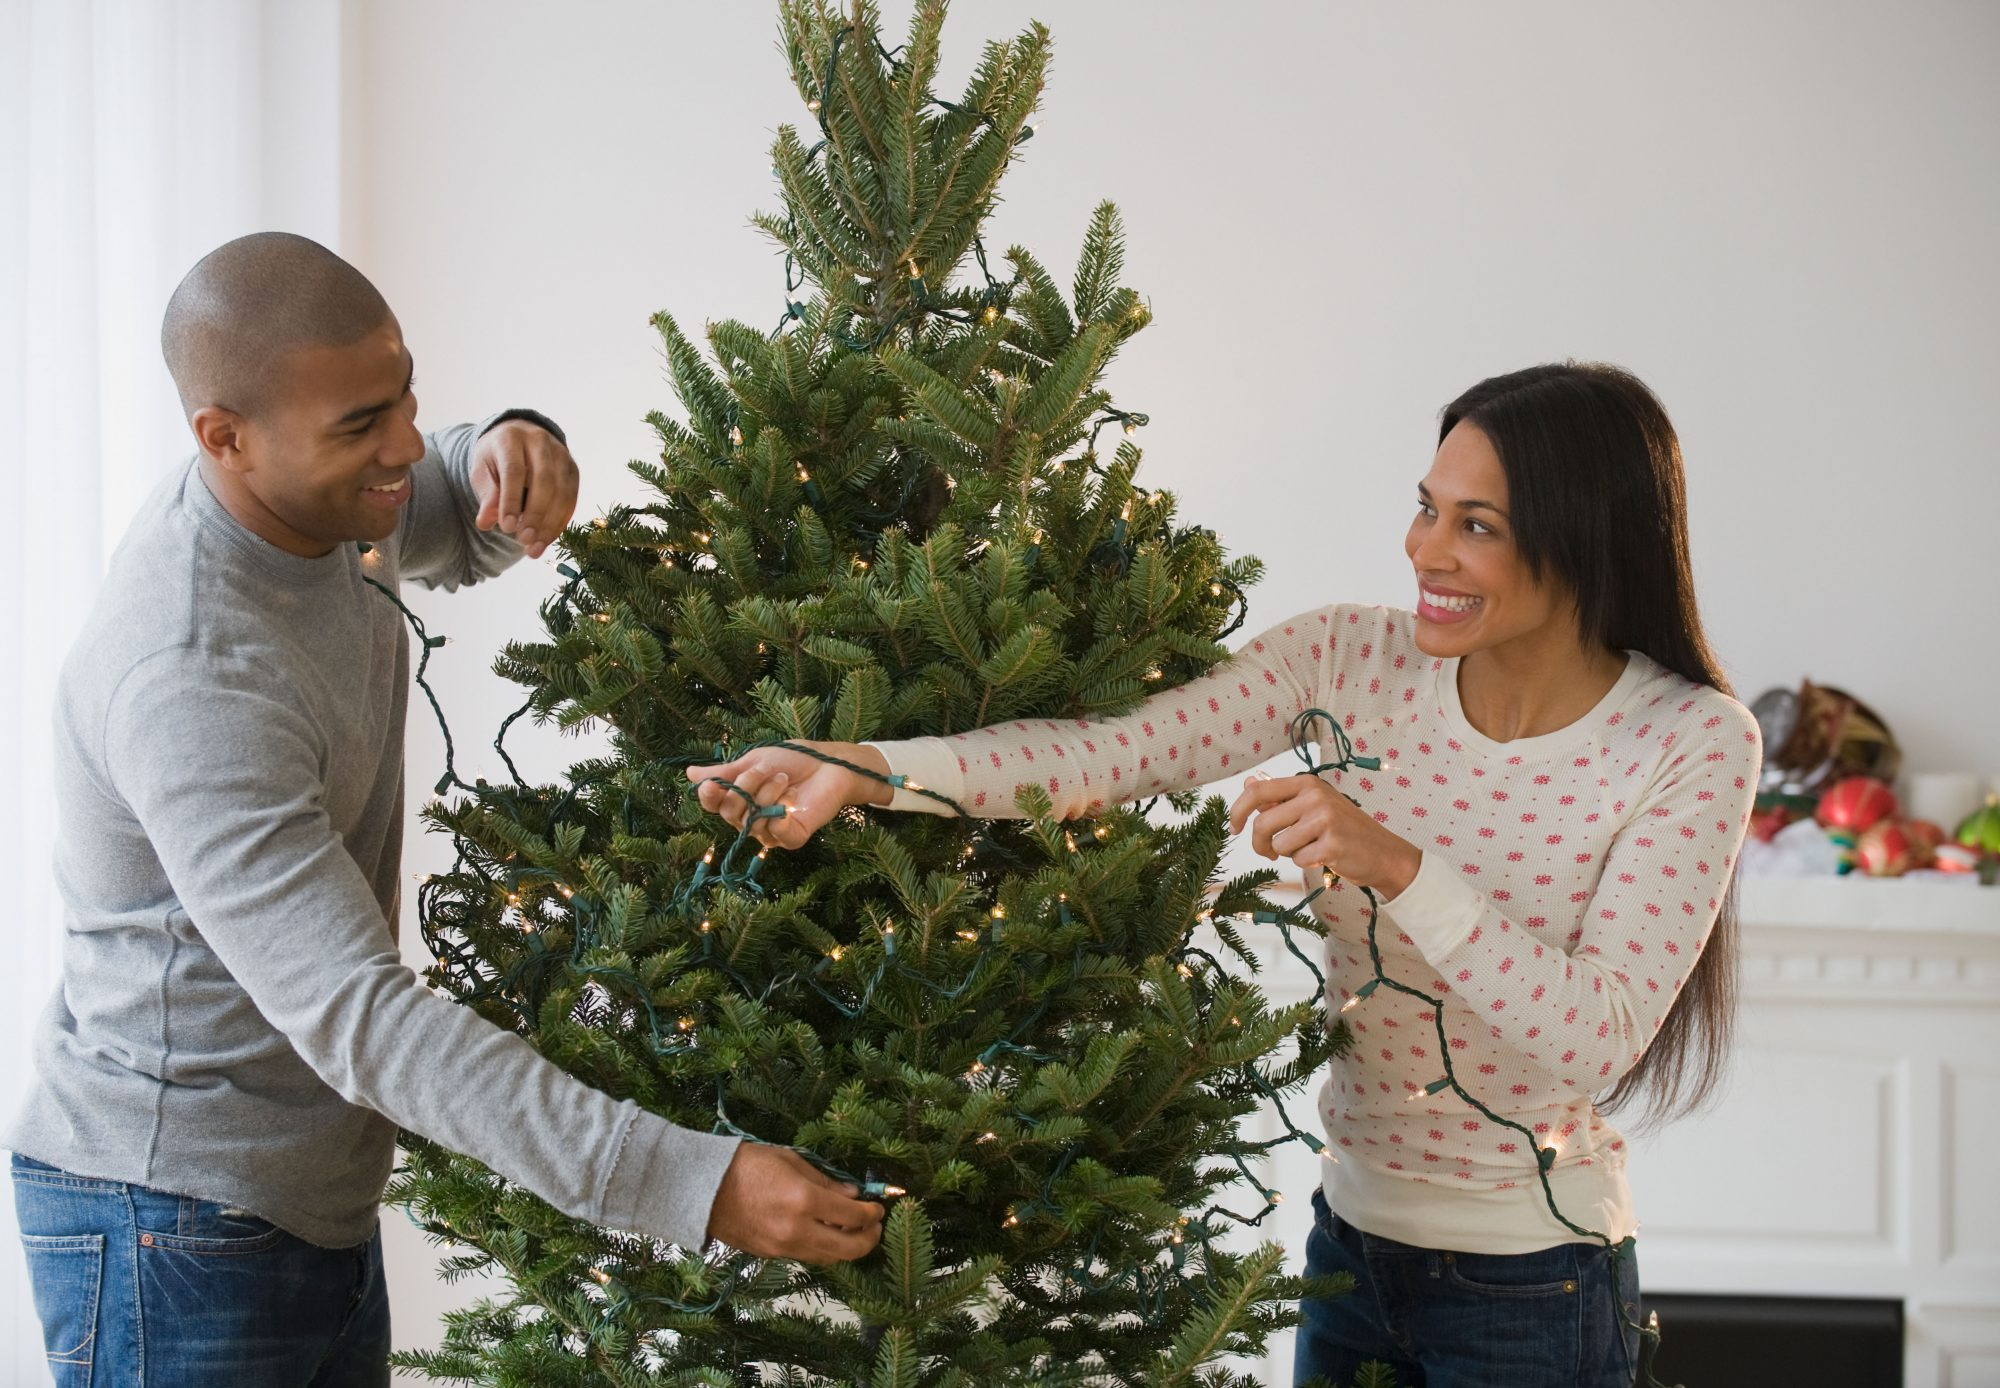 Couple Stringing Lights on Christmas Tree